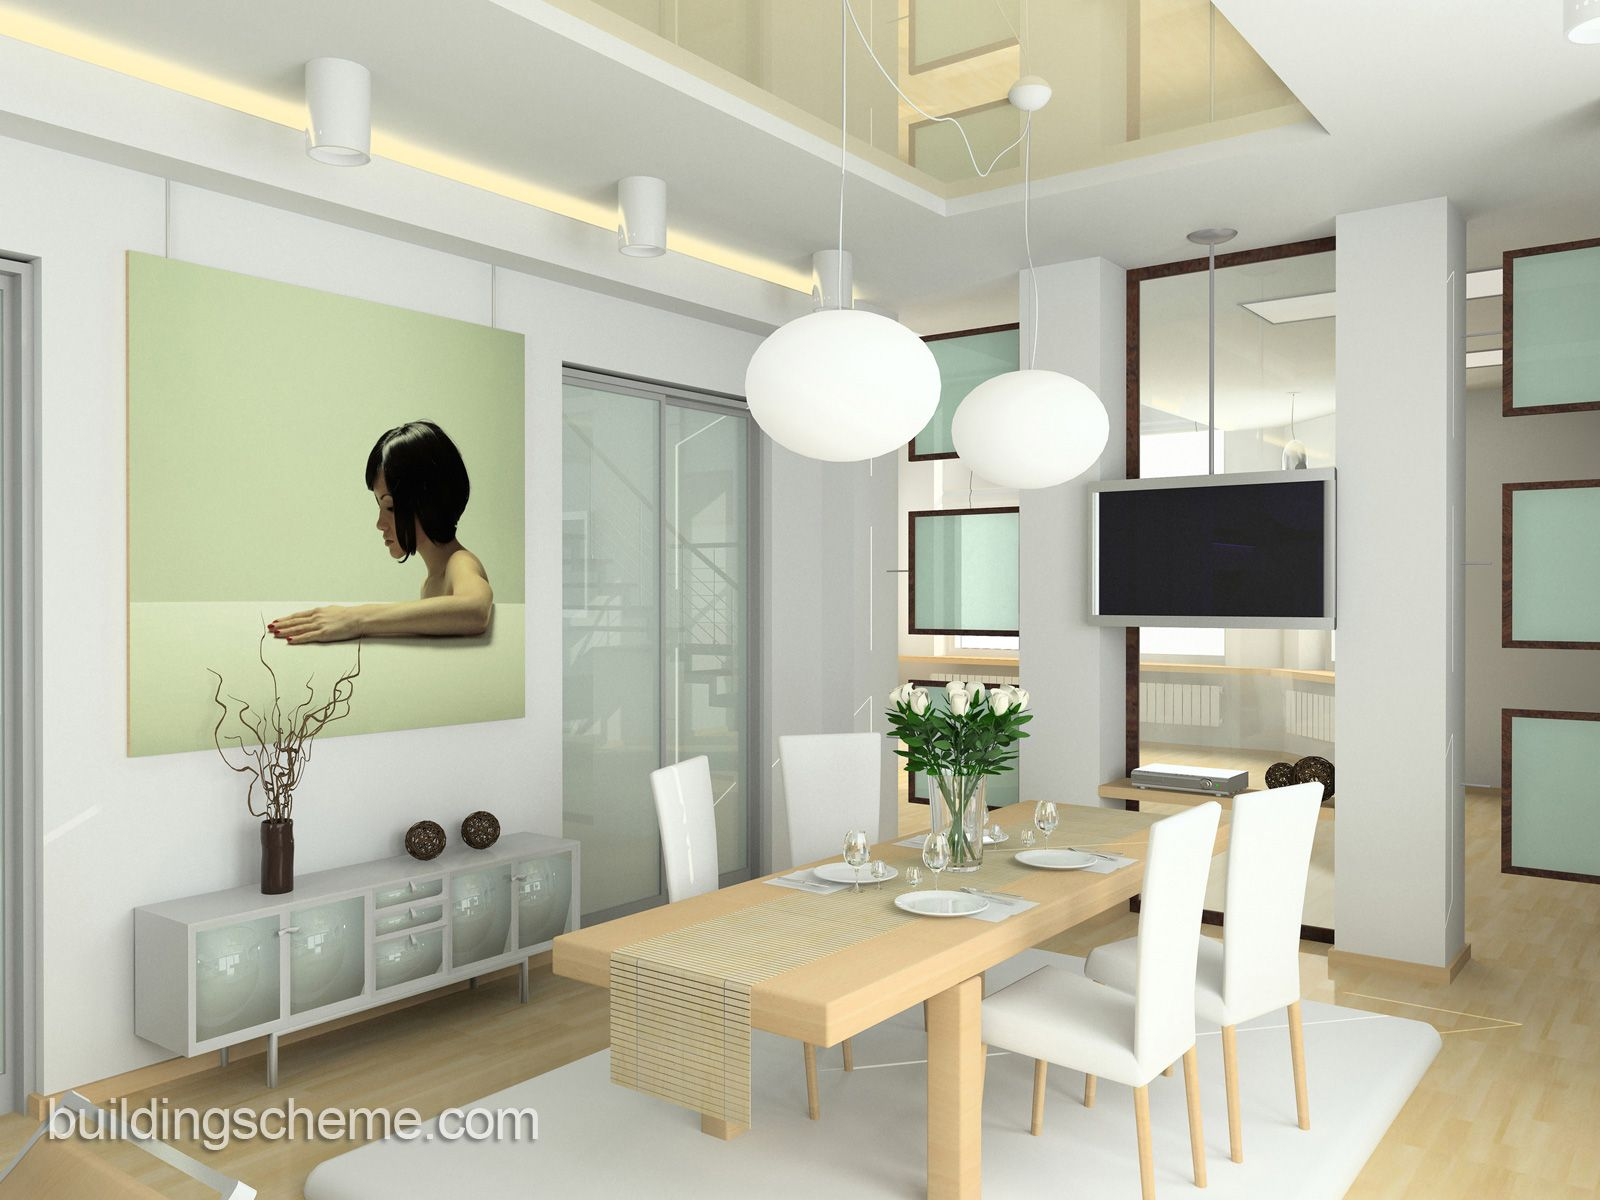 dining room ceiling fan. Good Lovely Dining Room Ceiling Fan , For Designs Http://